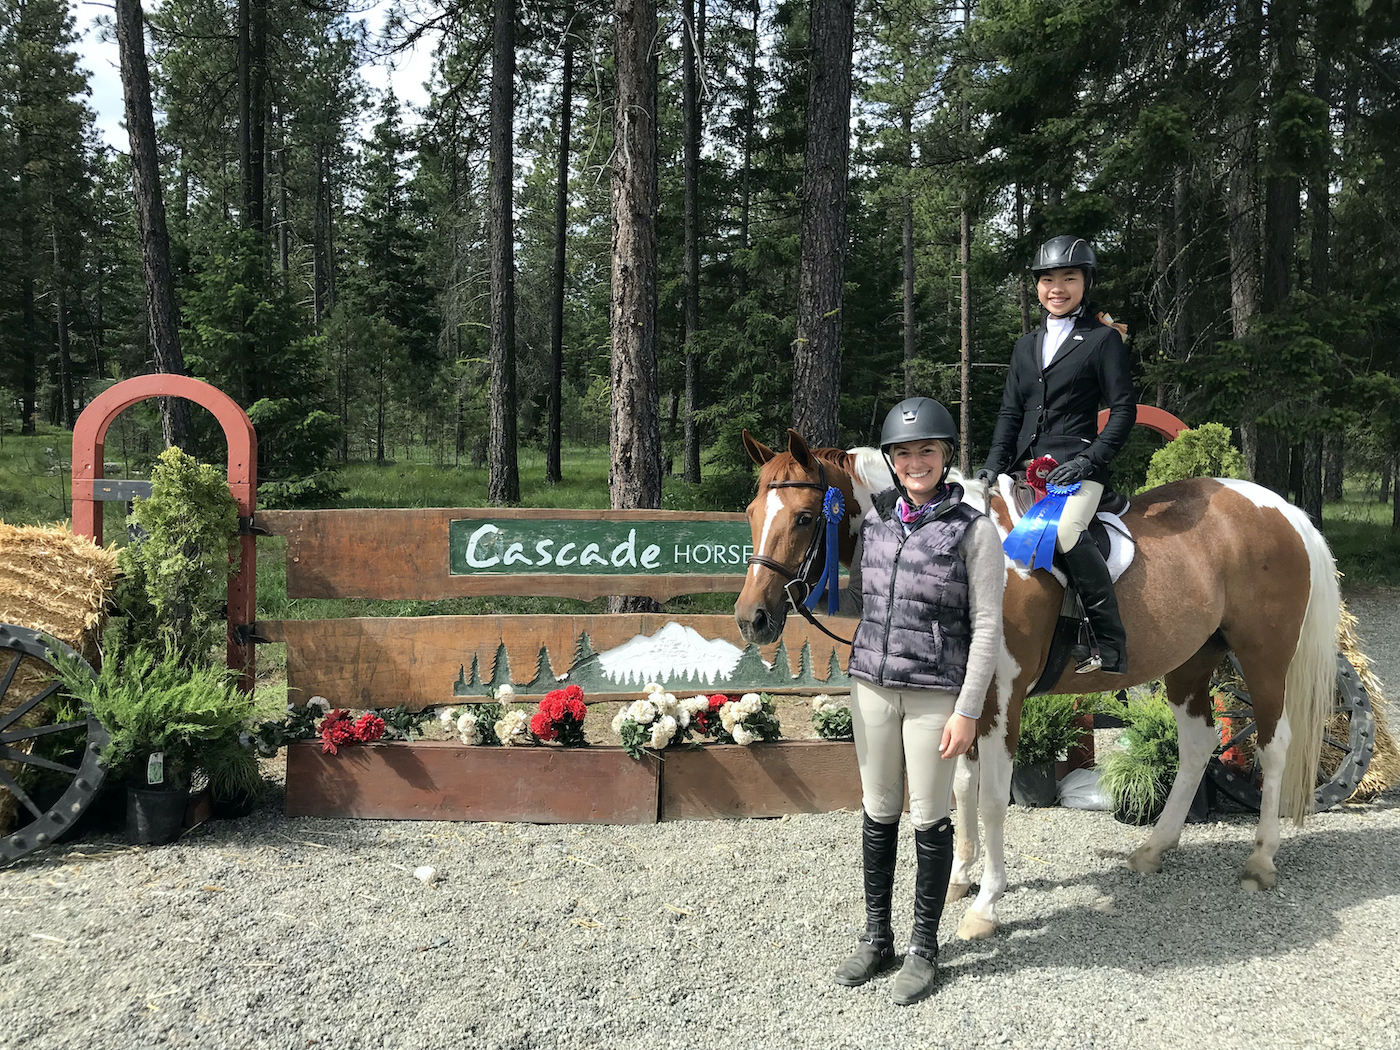 Jacque and Magnolia Ridge rider atop a horse pose with an award ribbon